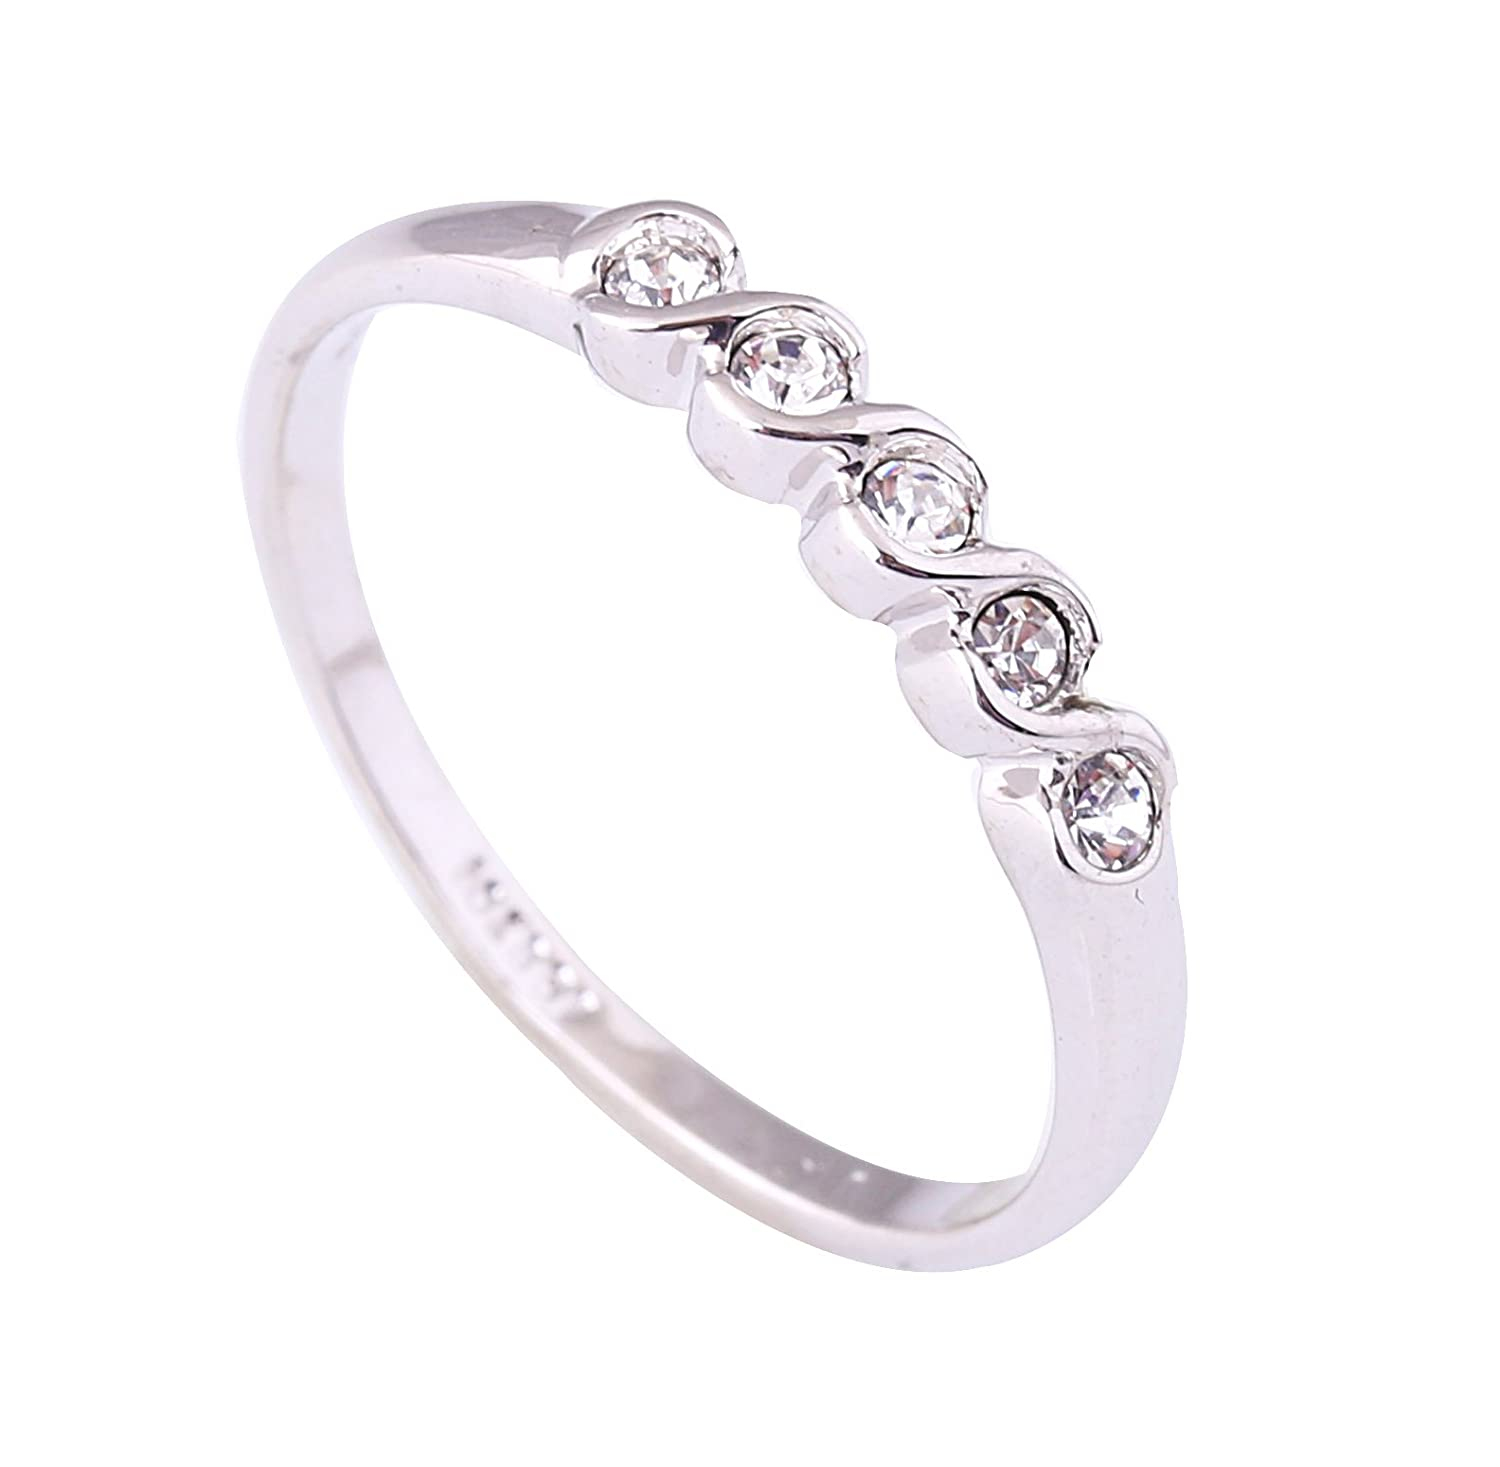 Acefeel Simplicity Style 18K White Gold Plated Czech Drilling Band Ring Valentine's Day Mother's Day Gift Ring R032